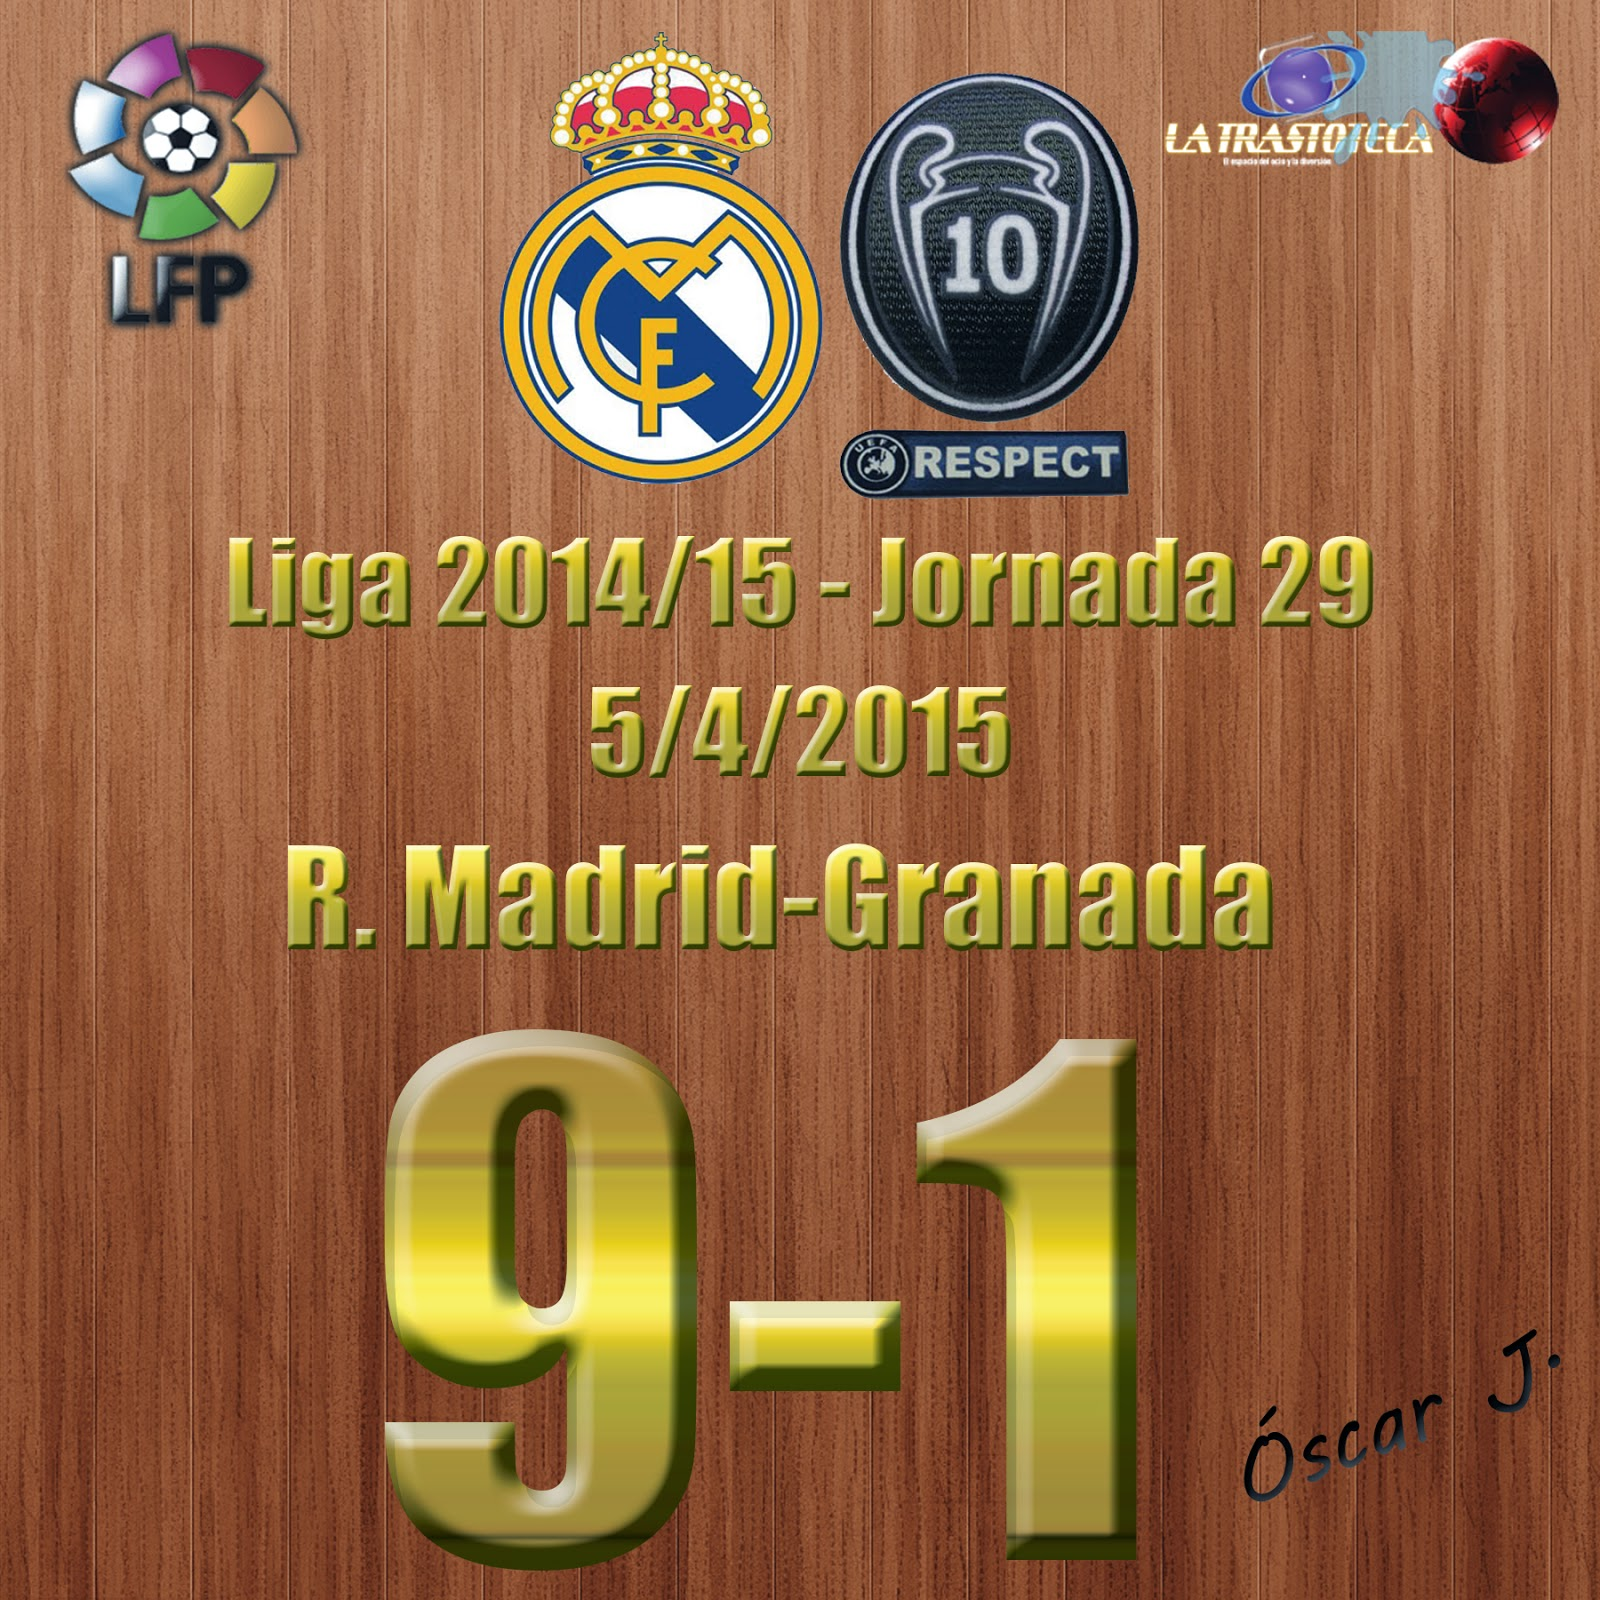 Cristiano Ronaldo (RE-POKER) - Real Madrid 9-1 Granada - Liga 2014/15 - Jornada 29 - (5/4/2015)